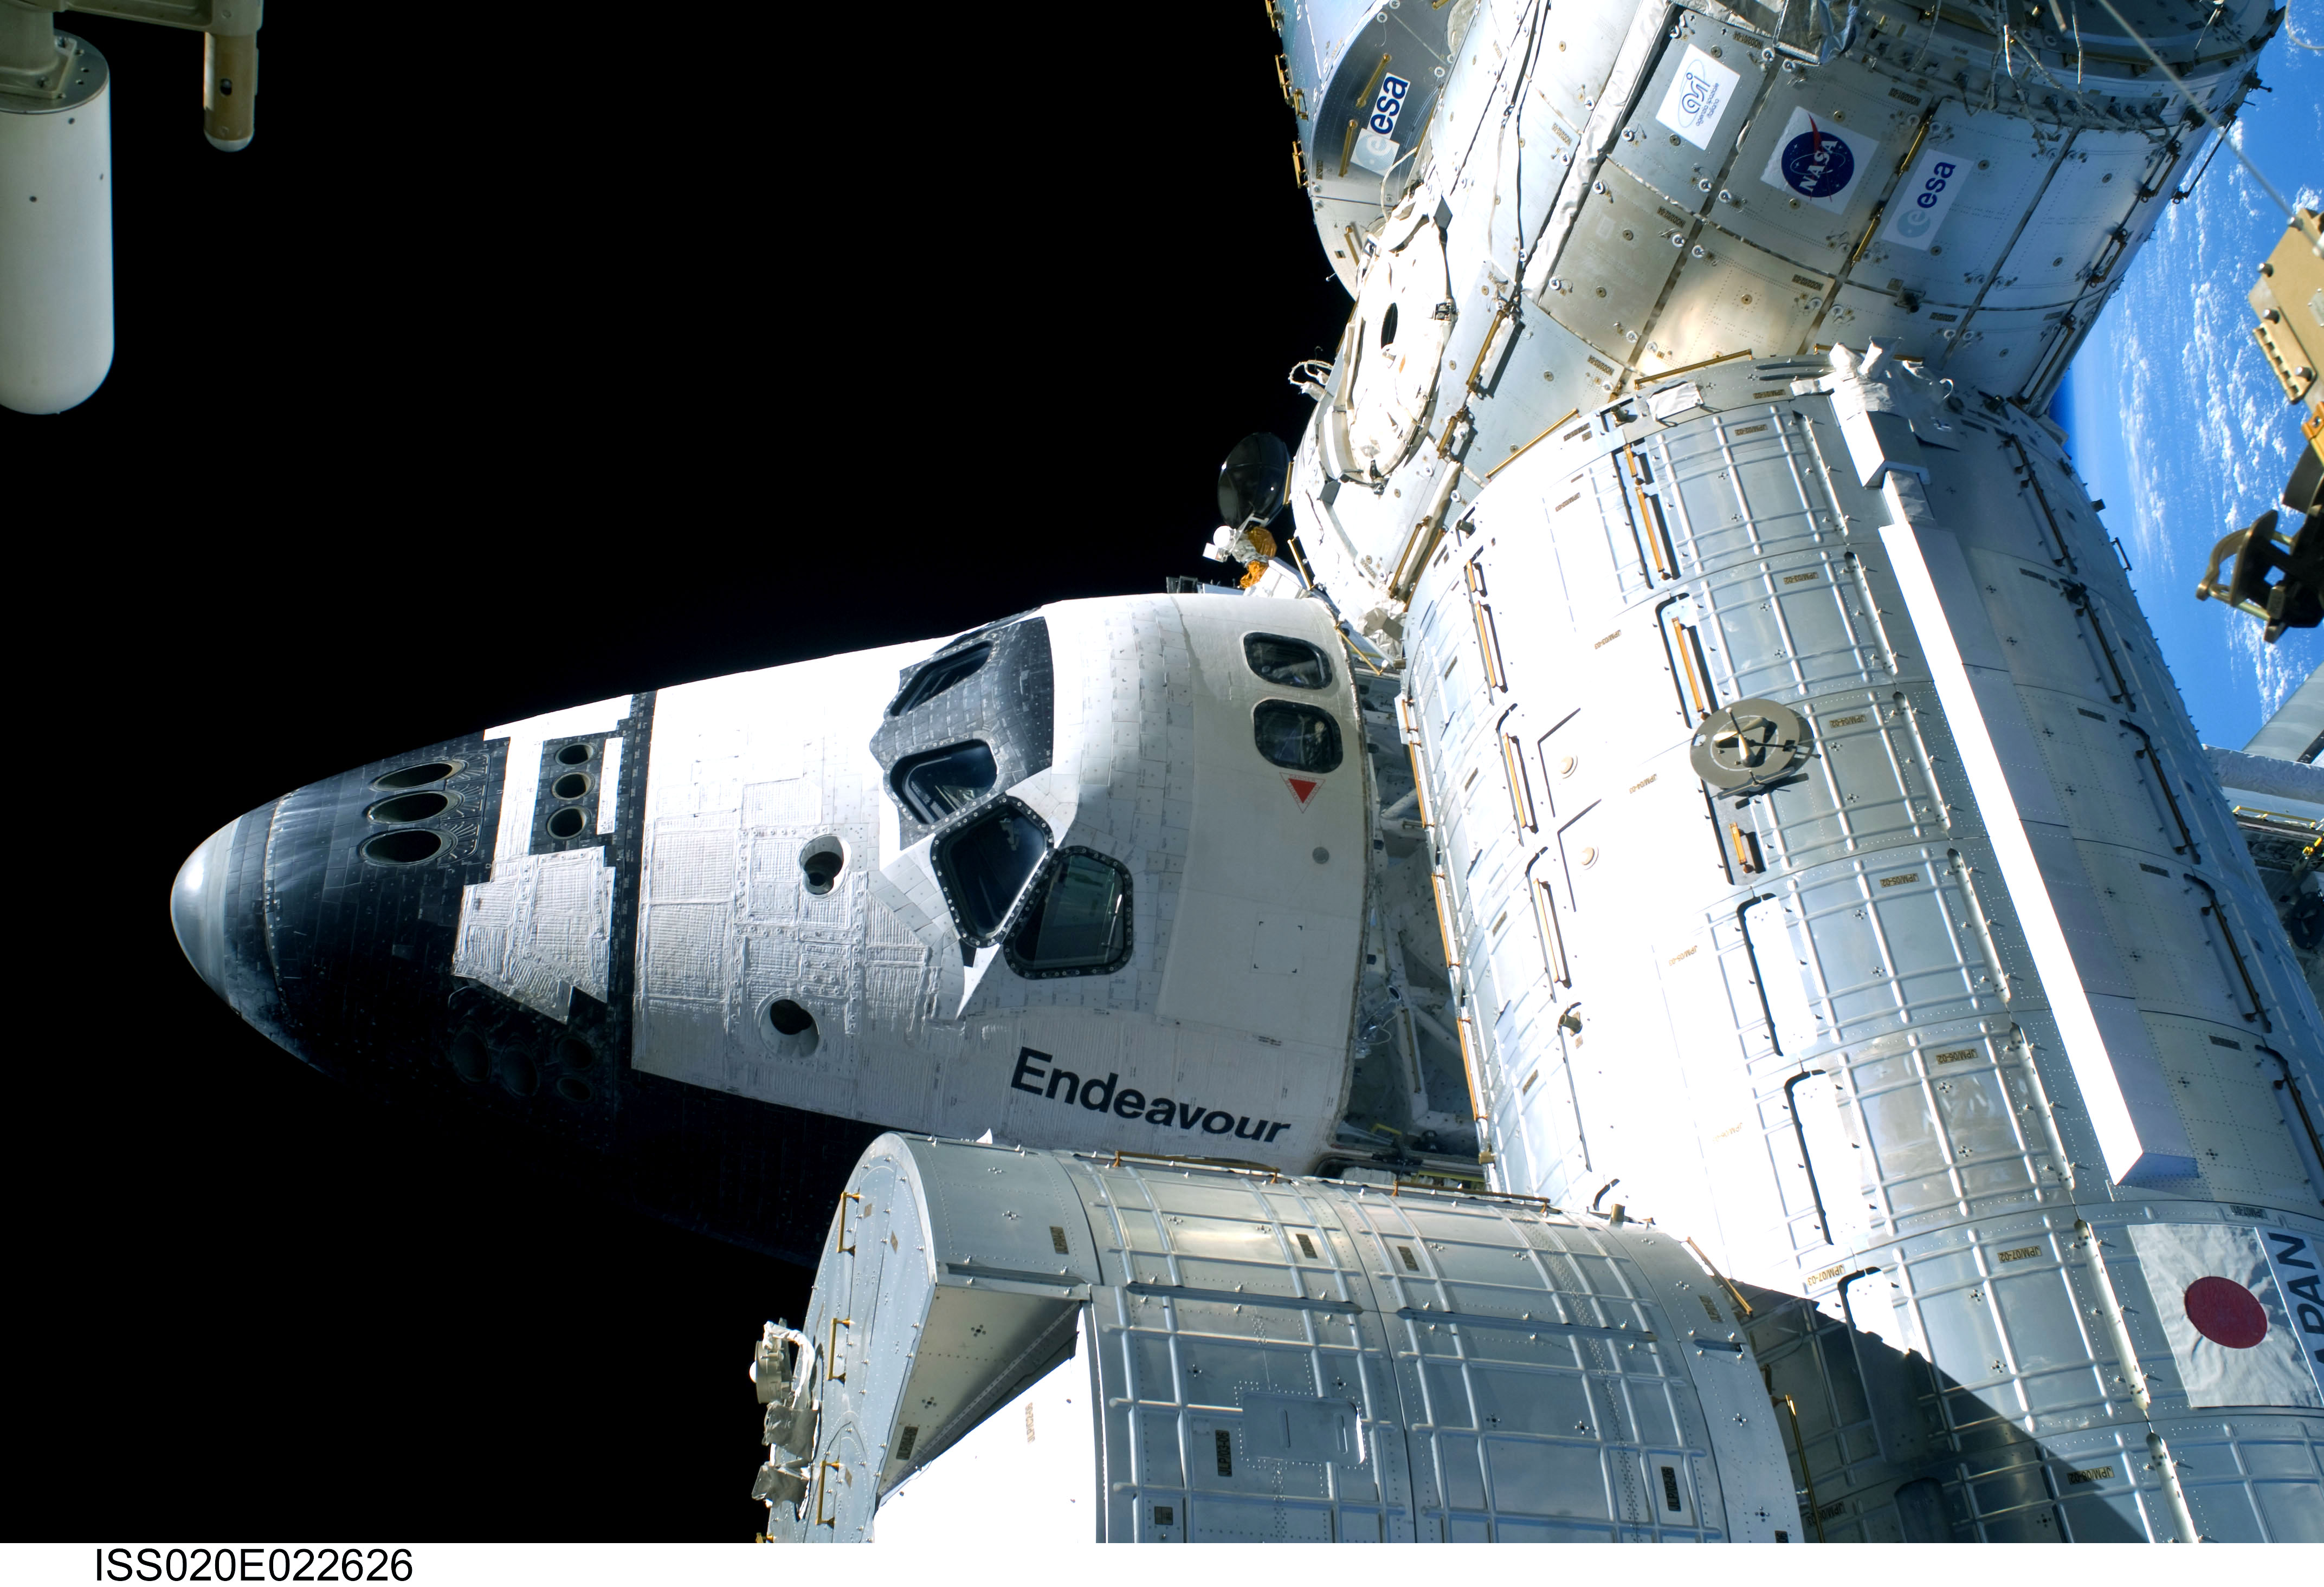 space shuttle endeavour in space - photo #11